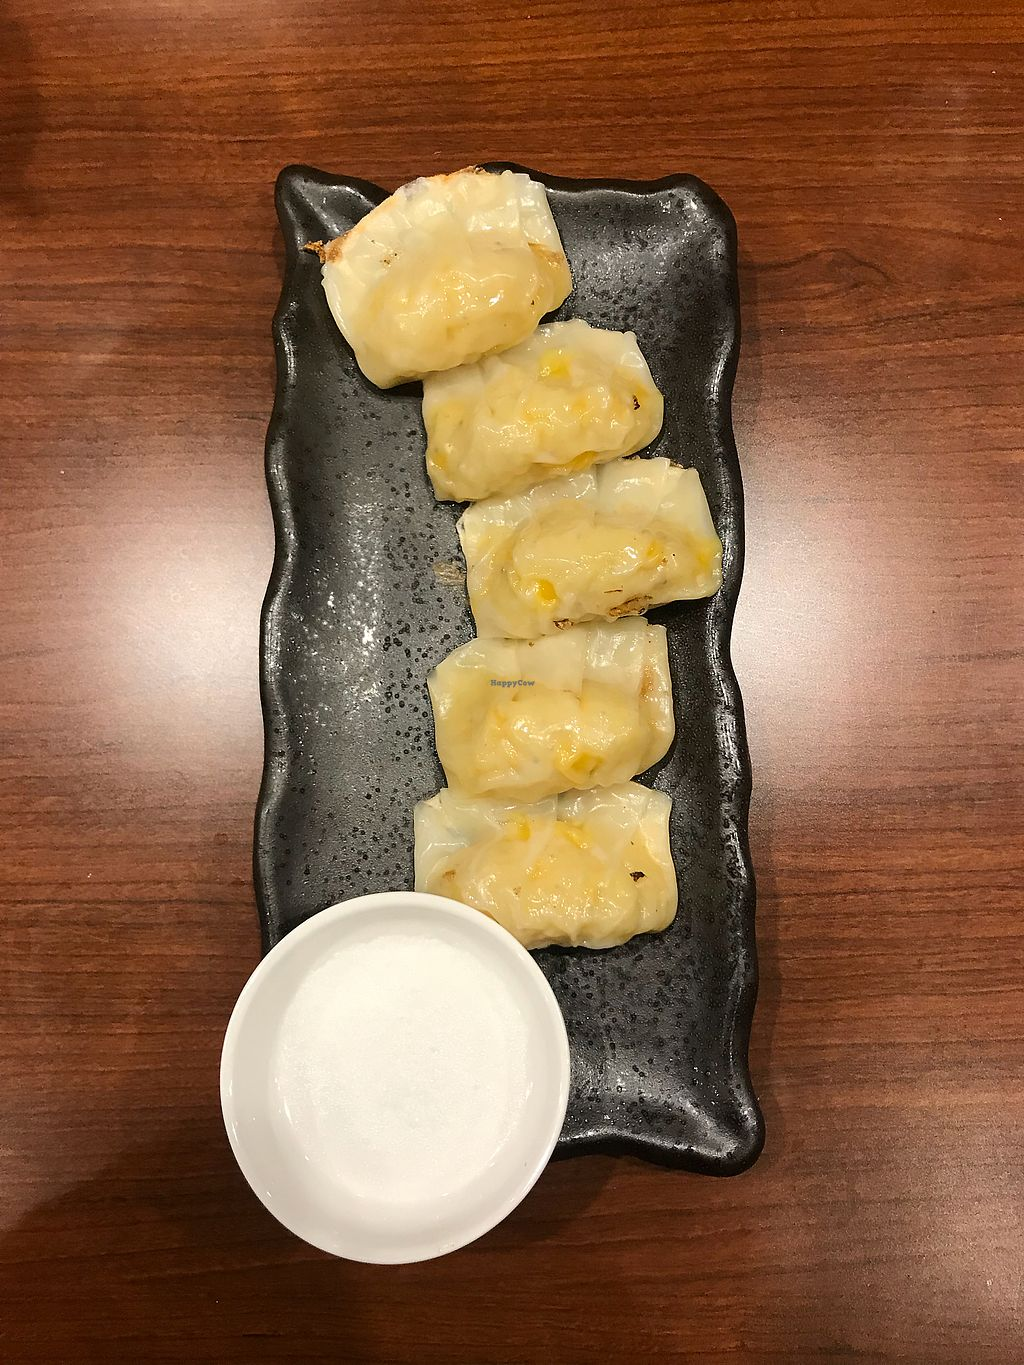 "Photo of Chao Chao Gyoza Shijo-Kawaramachi  by <a href=""/members/profile/MelissaW"">MelissaW</a> <br/>Mashed potato grilled gyoza  <br/> February 4, 2018  - <a href='/contact/abuse/image/108953/354817'>Report</a>"